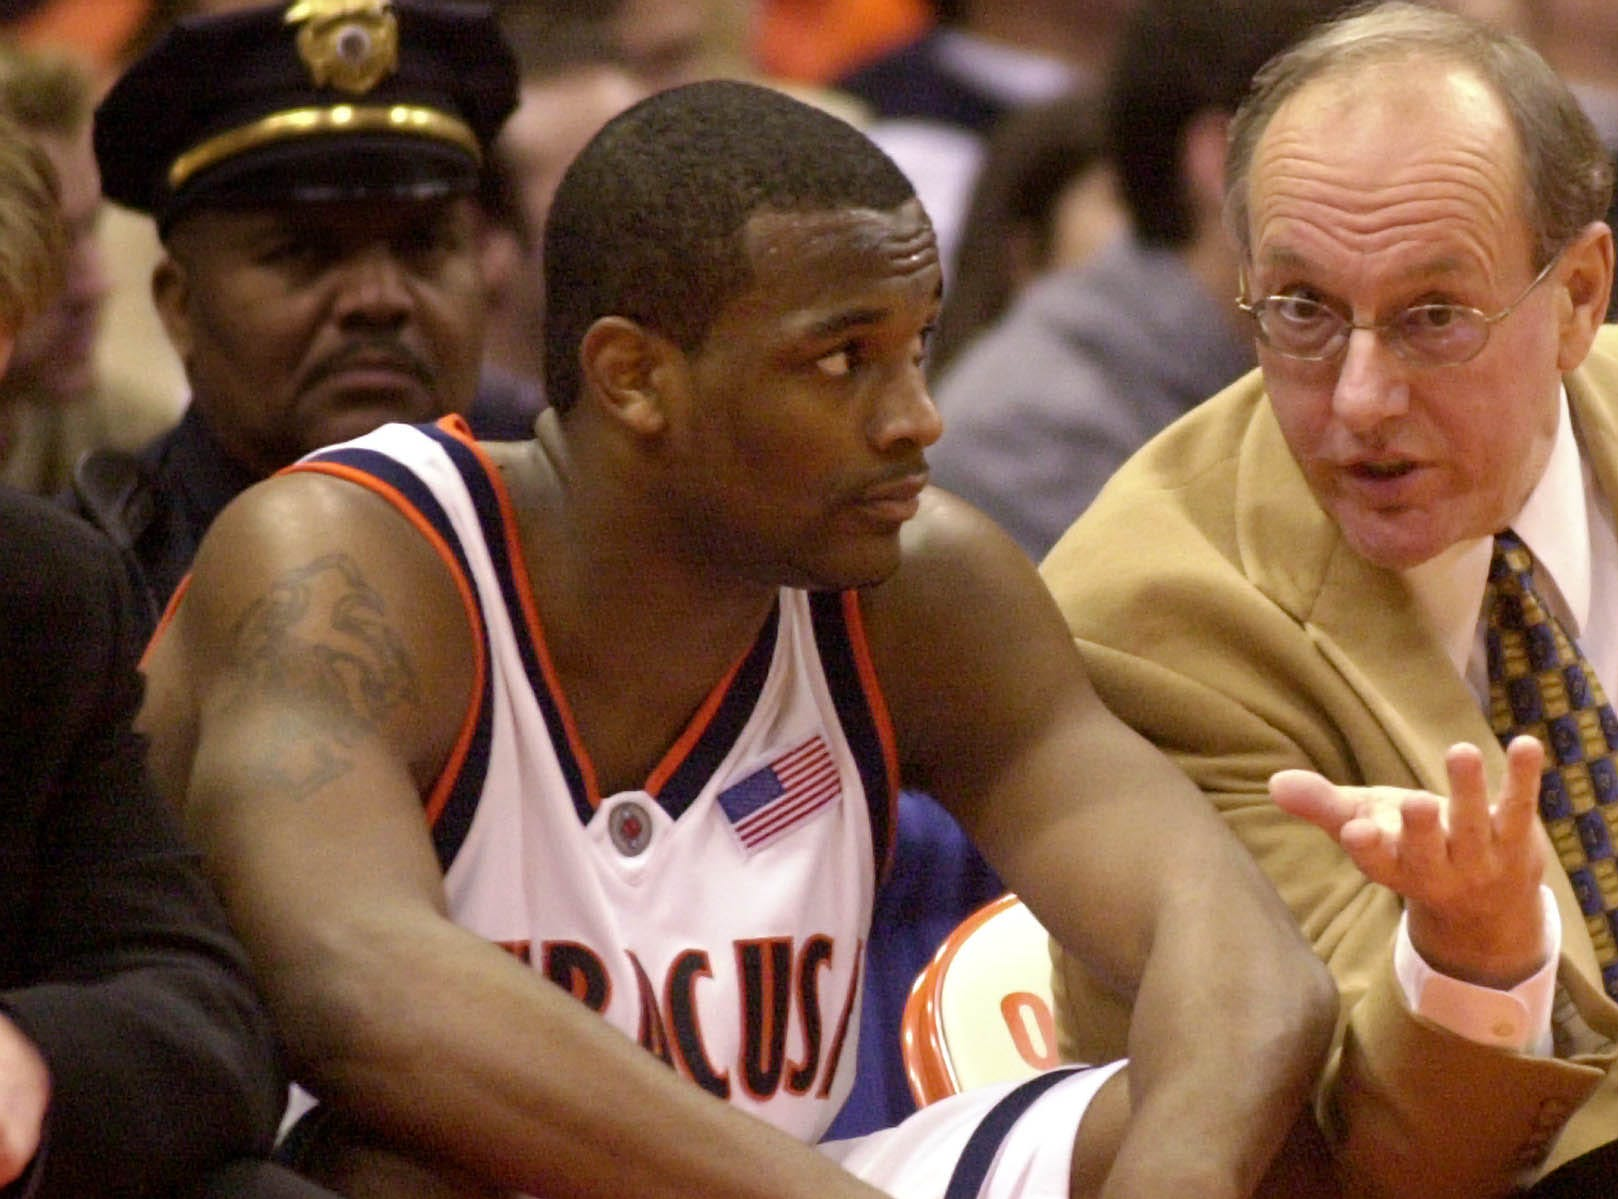 2002: Syracuse's DeShaun Williams listens to head coach Jim Boeheim, right, during the game against Rutgers in Syracuse, N.Y., Wednesday, Jan. 2, 2002. Williams, a 21-year-old junior from Patterson, N.J., was arraigned Thursday, May 9, 2002, for third-degree assault. He is accused of punching student Nicole Wilcox in the face during a dispute at a Syracuse bar early Wednesday, May 8, 2002. (AP Photo/Kevin Rivoli)